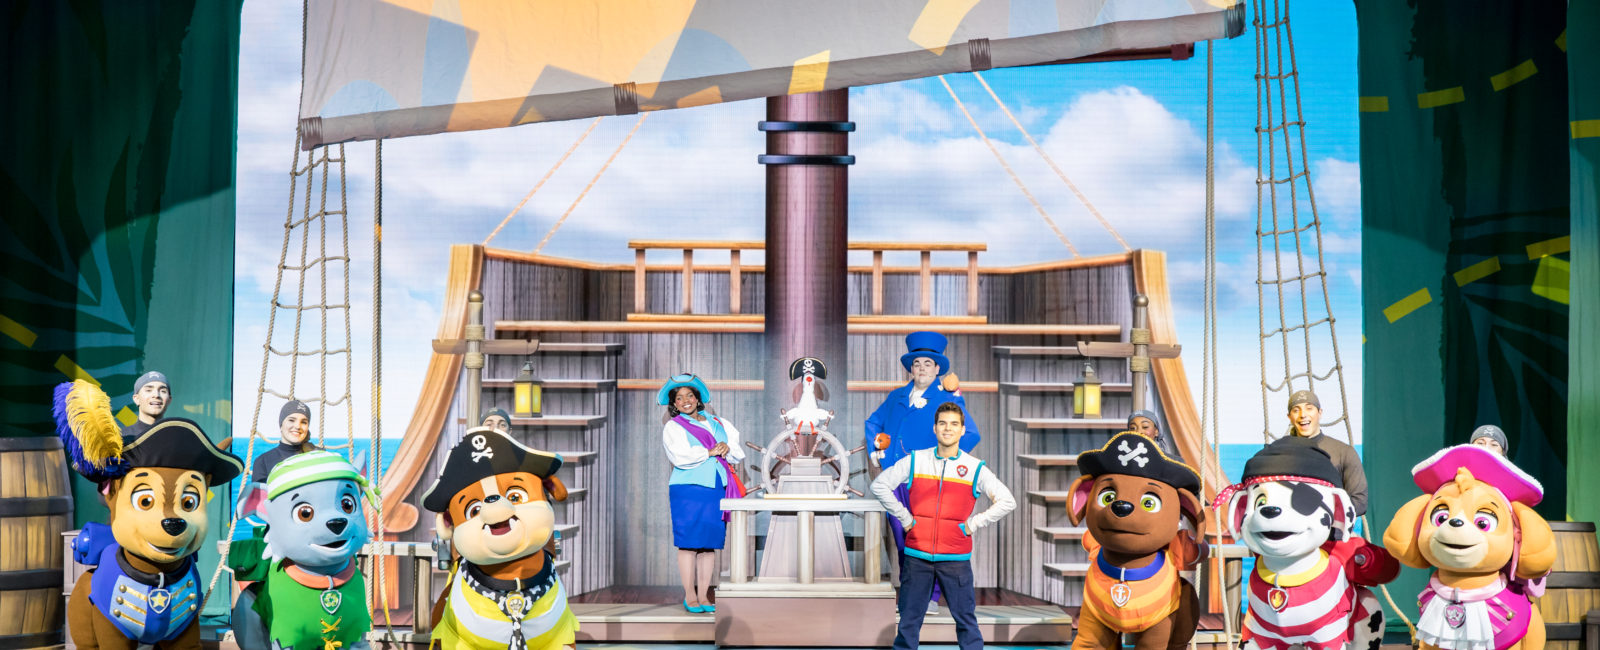 """PAW Patrol Live! """"The Great Pirate Adventure"""" in Toronto! (Giveaway)"""